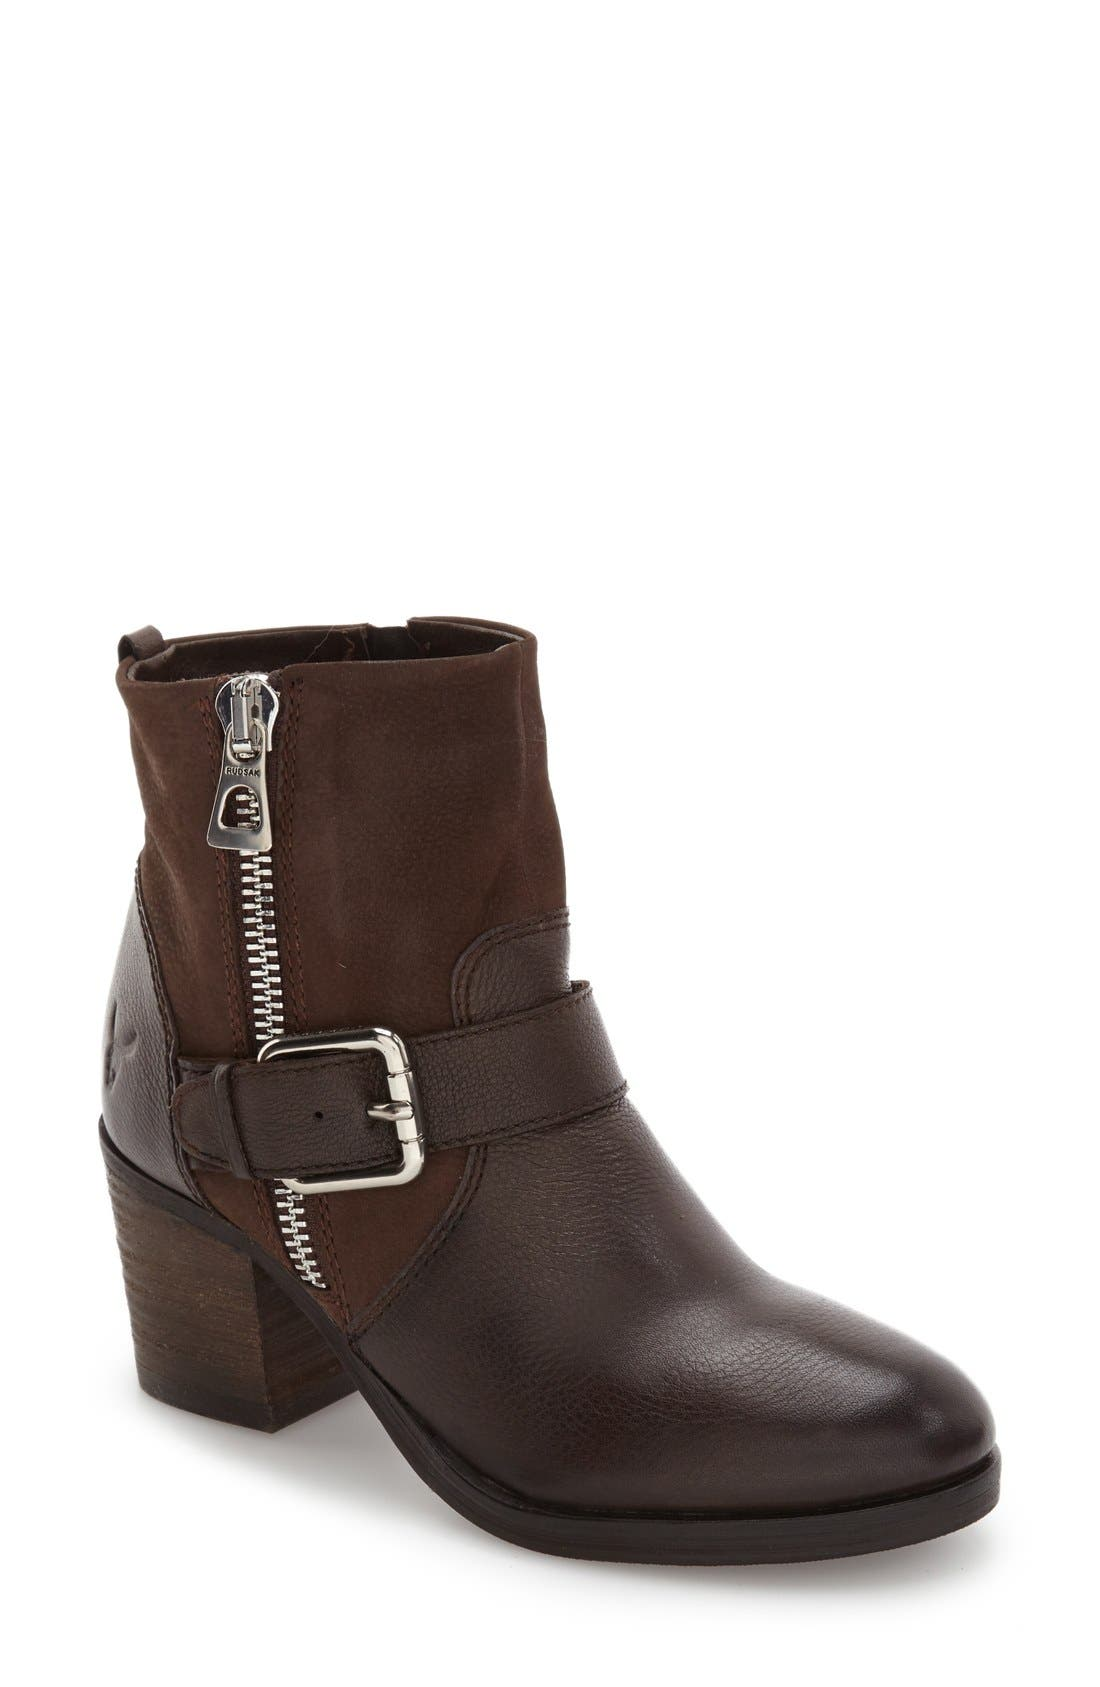 Balady Boot,                         Main,                         color, Brown Leather